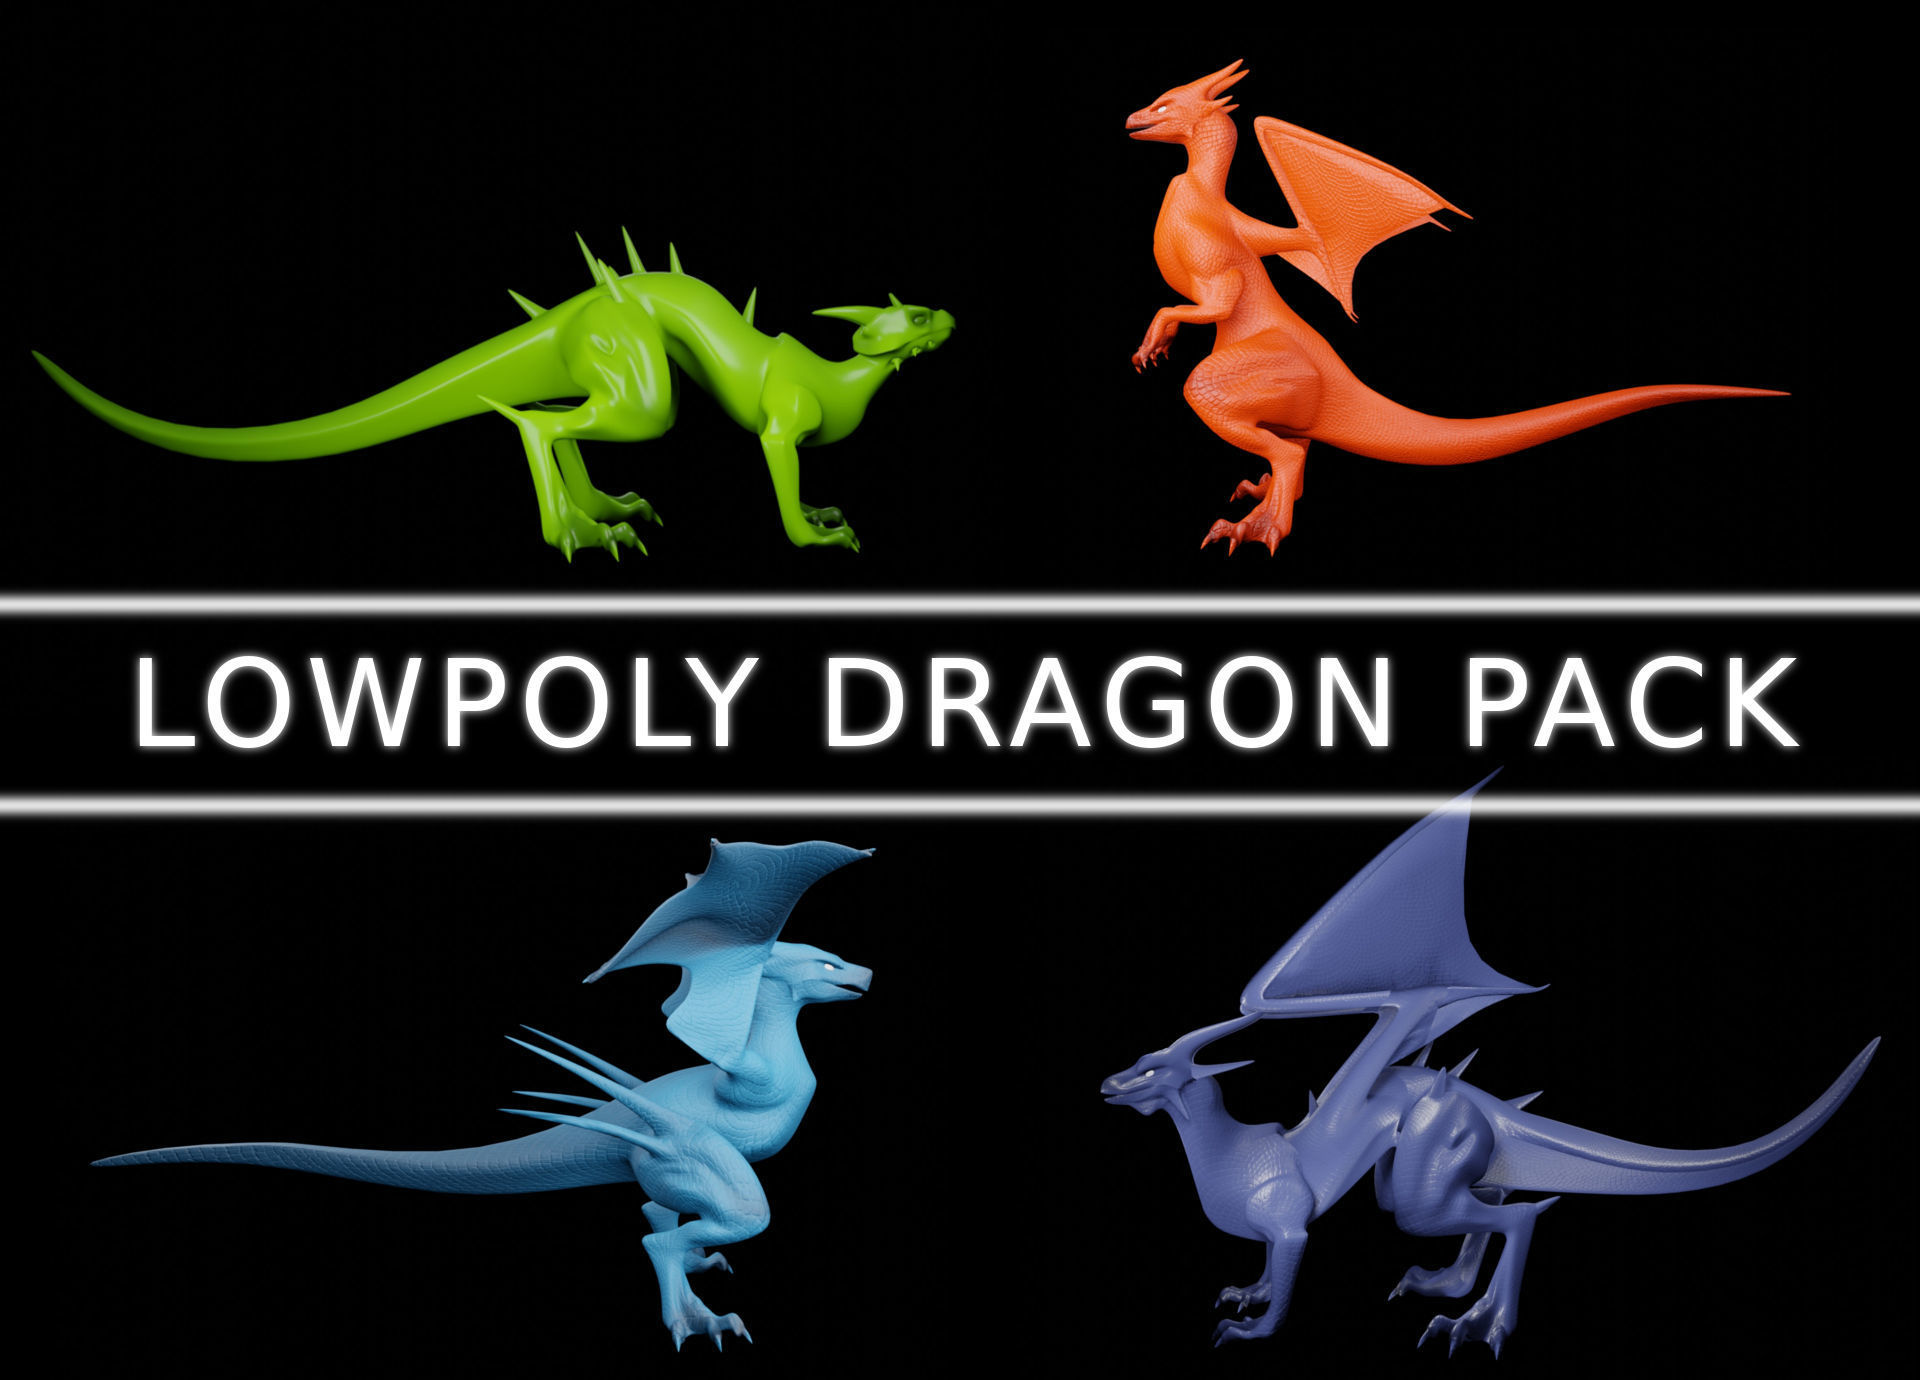 Lowpoly Dragon Pack